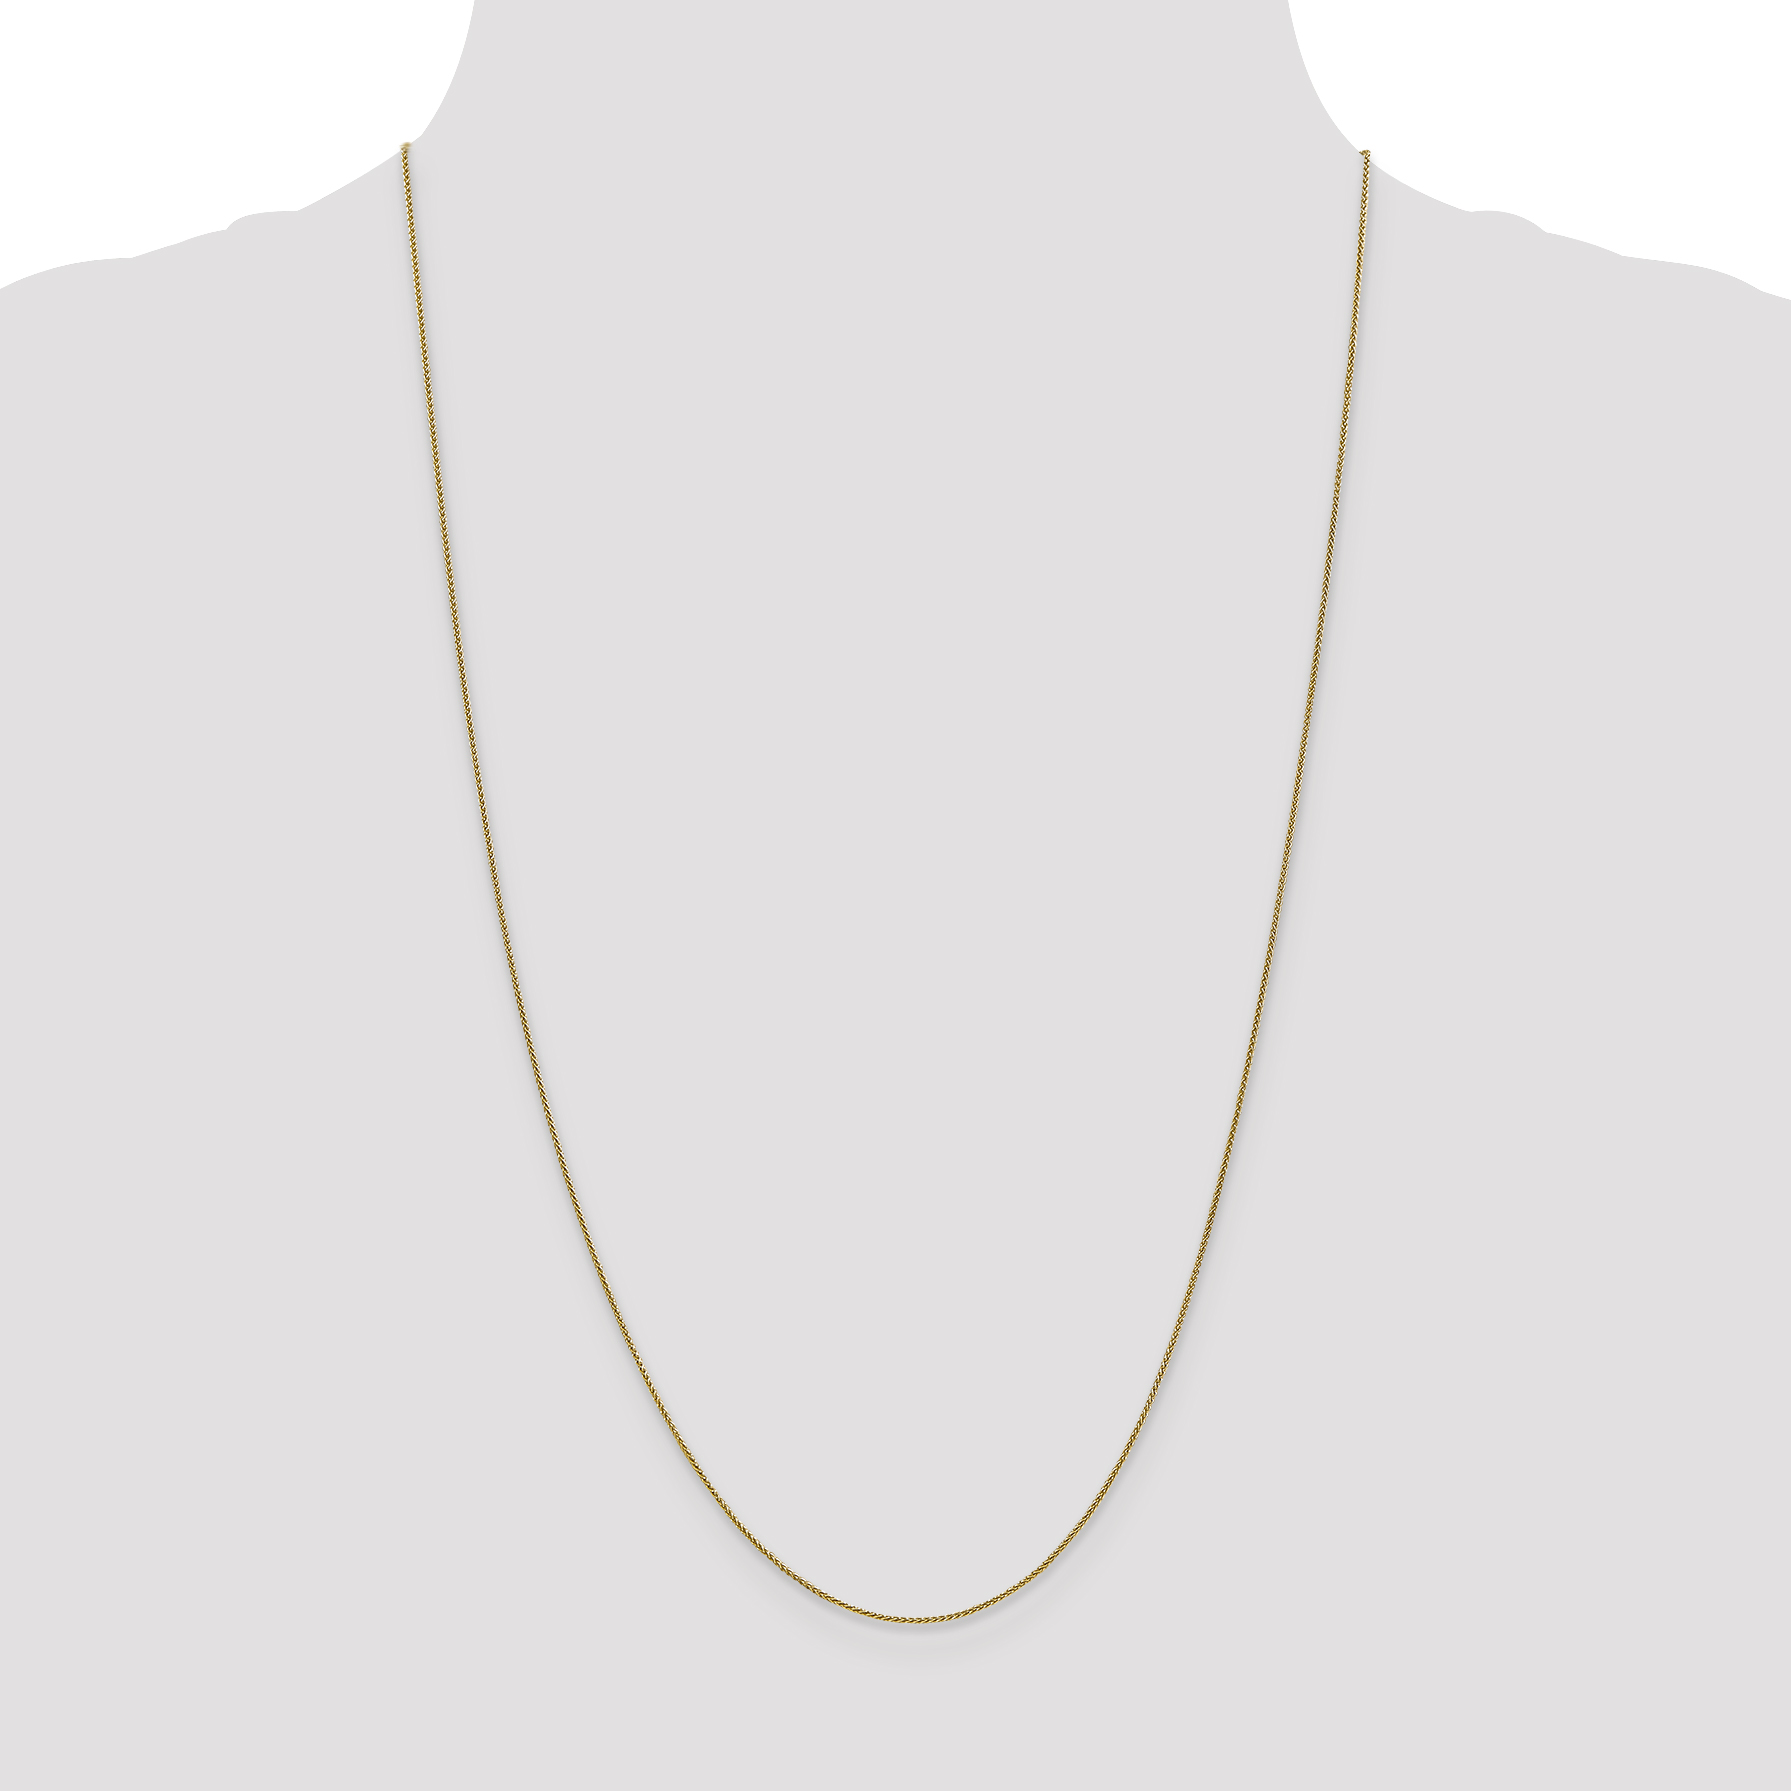 14K Yellow Gold 0.80mm Spiga Pendant Chain 16 Inch - image 3 de 5